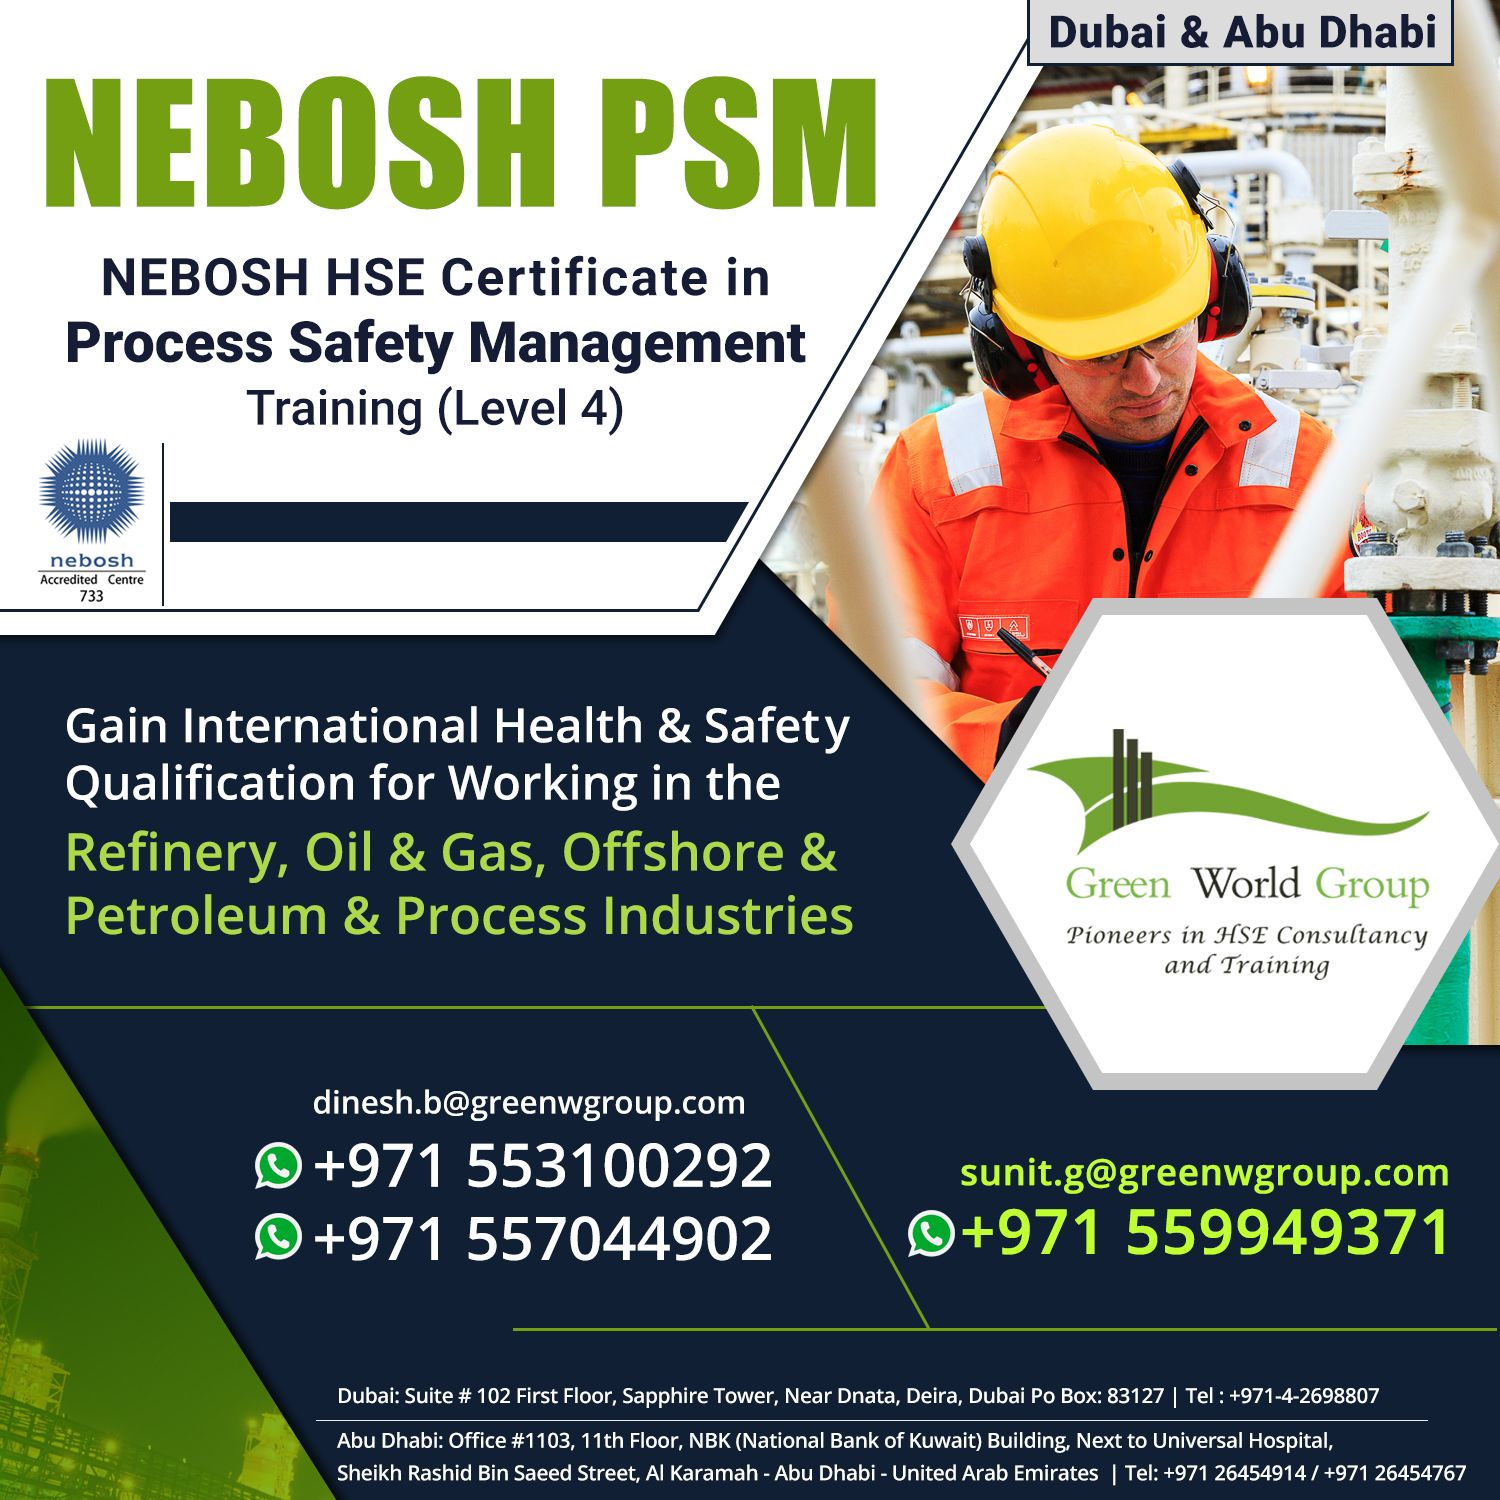 The Nebosh PSM(Process Safety Management) Course is the